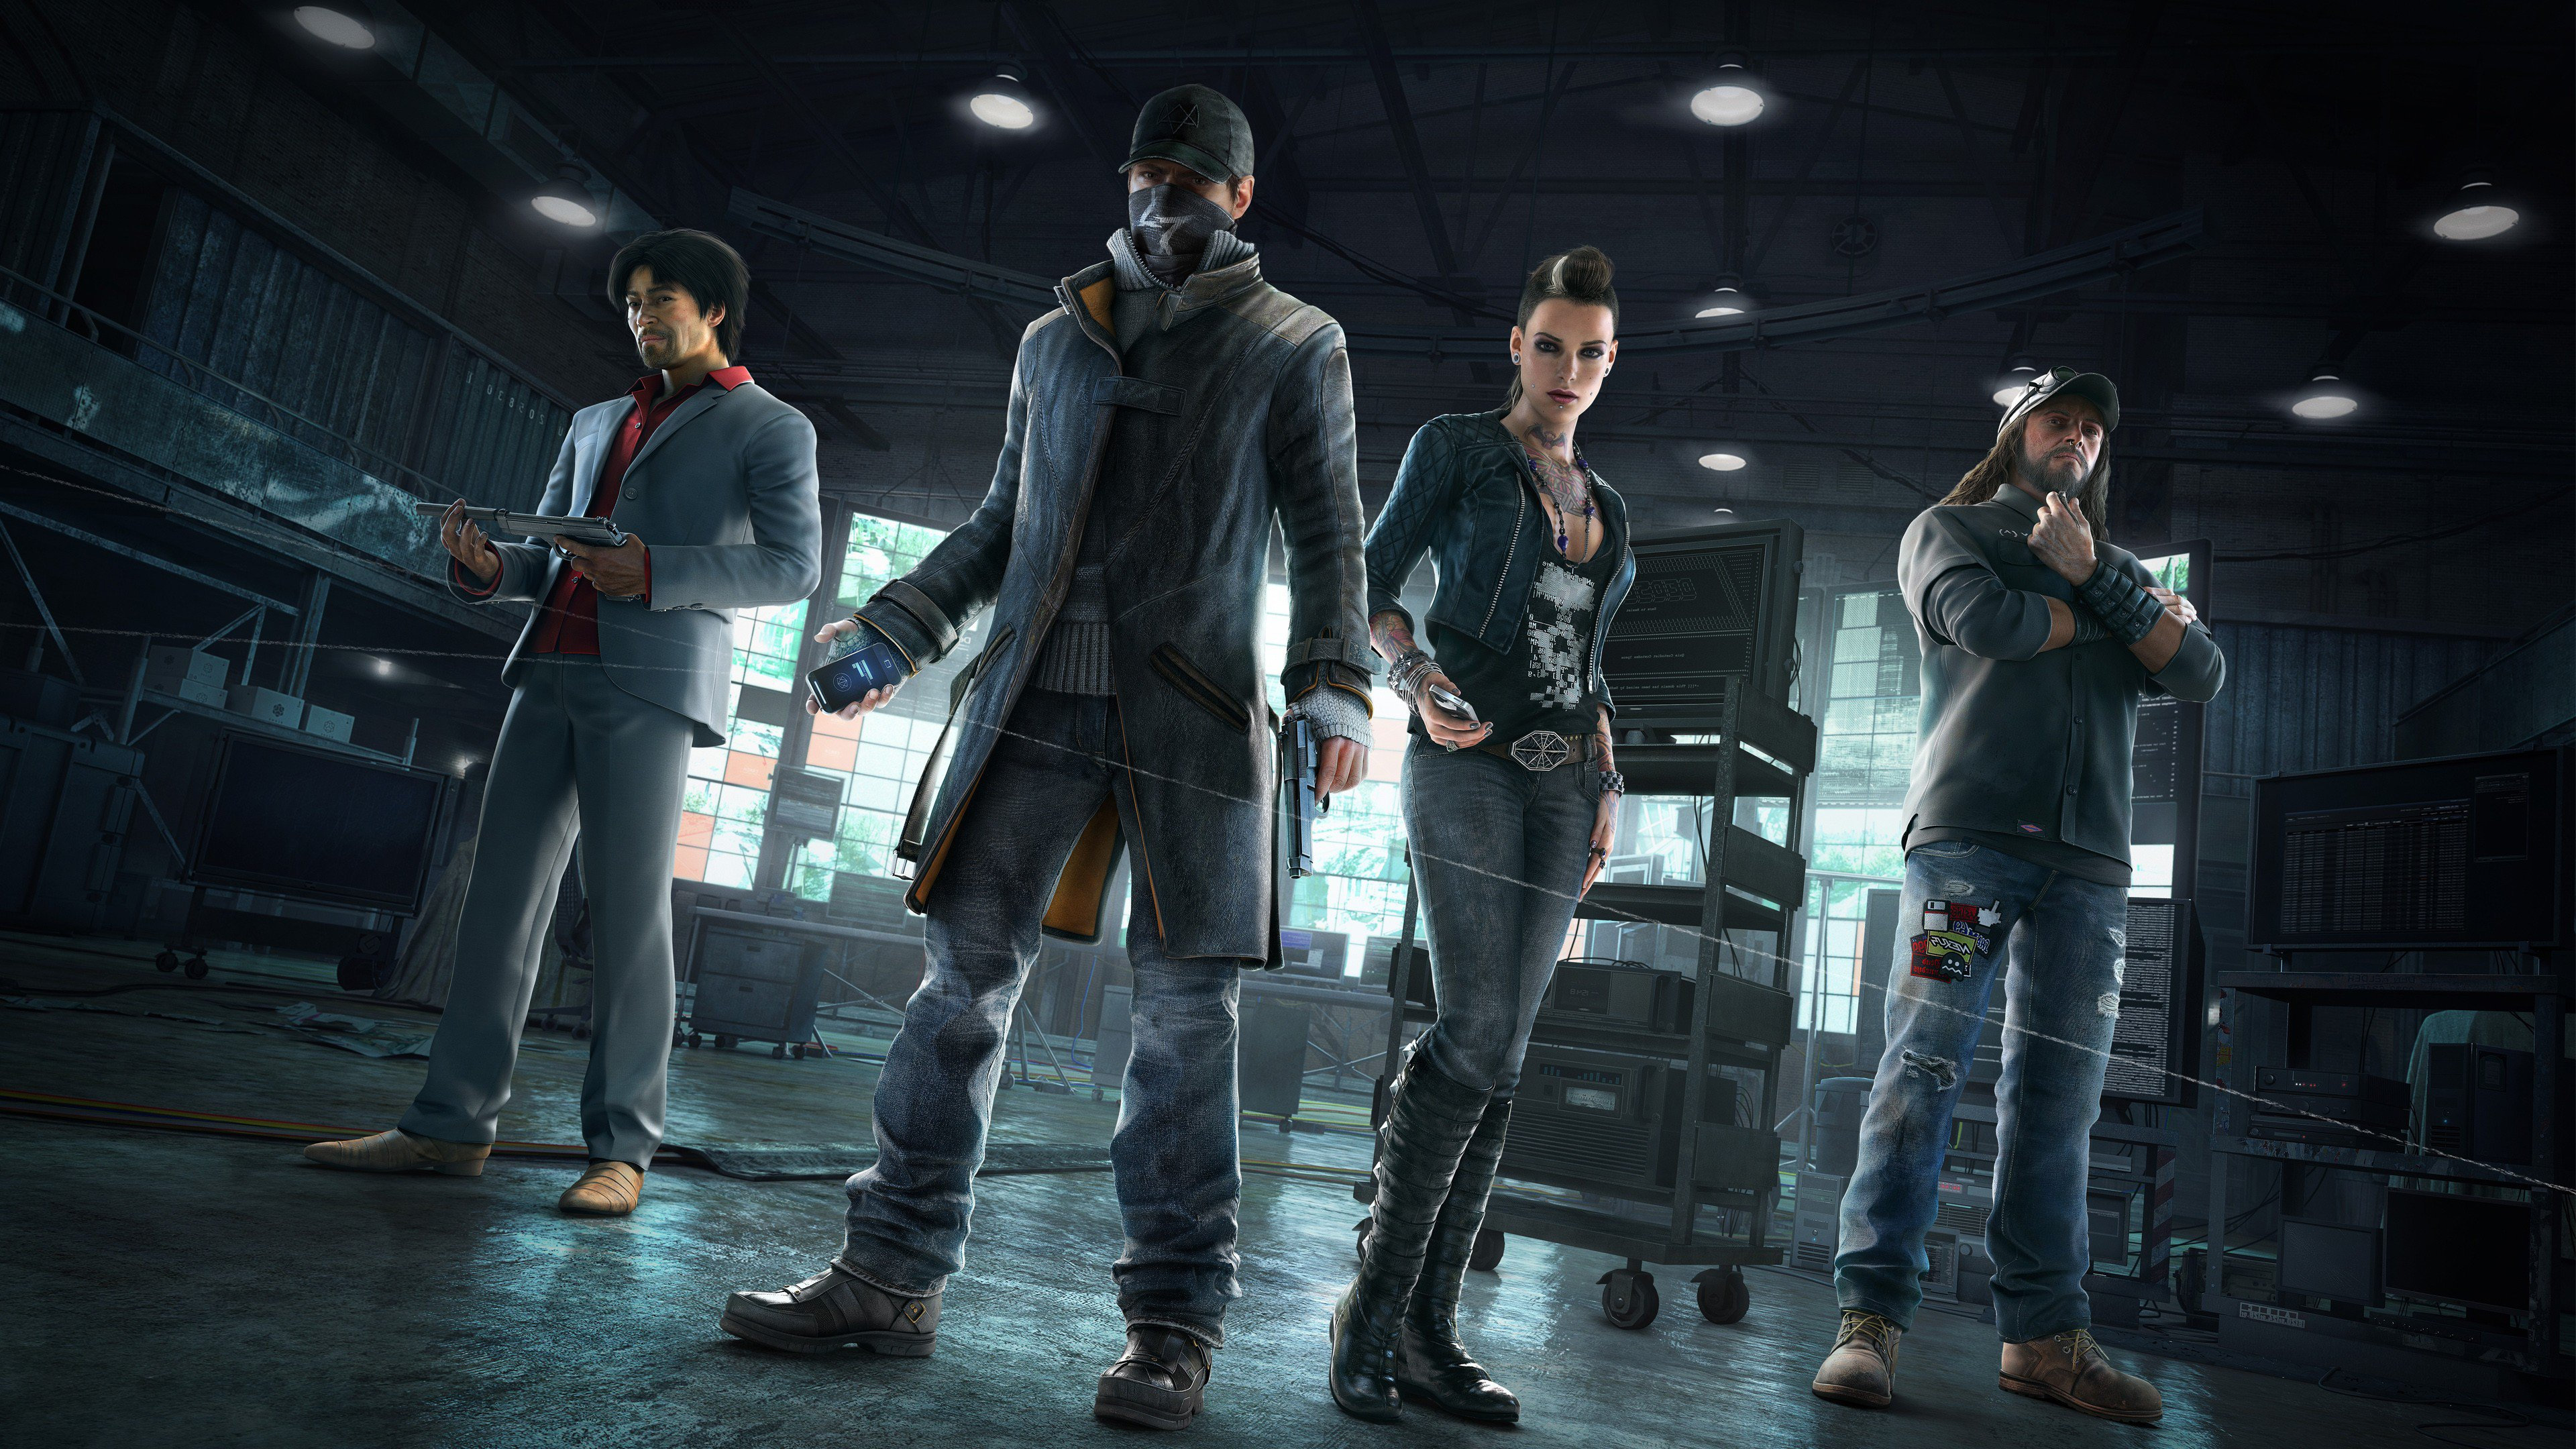 Cyberpunk Watch Dogs